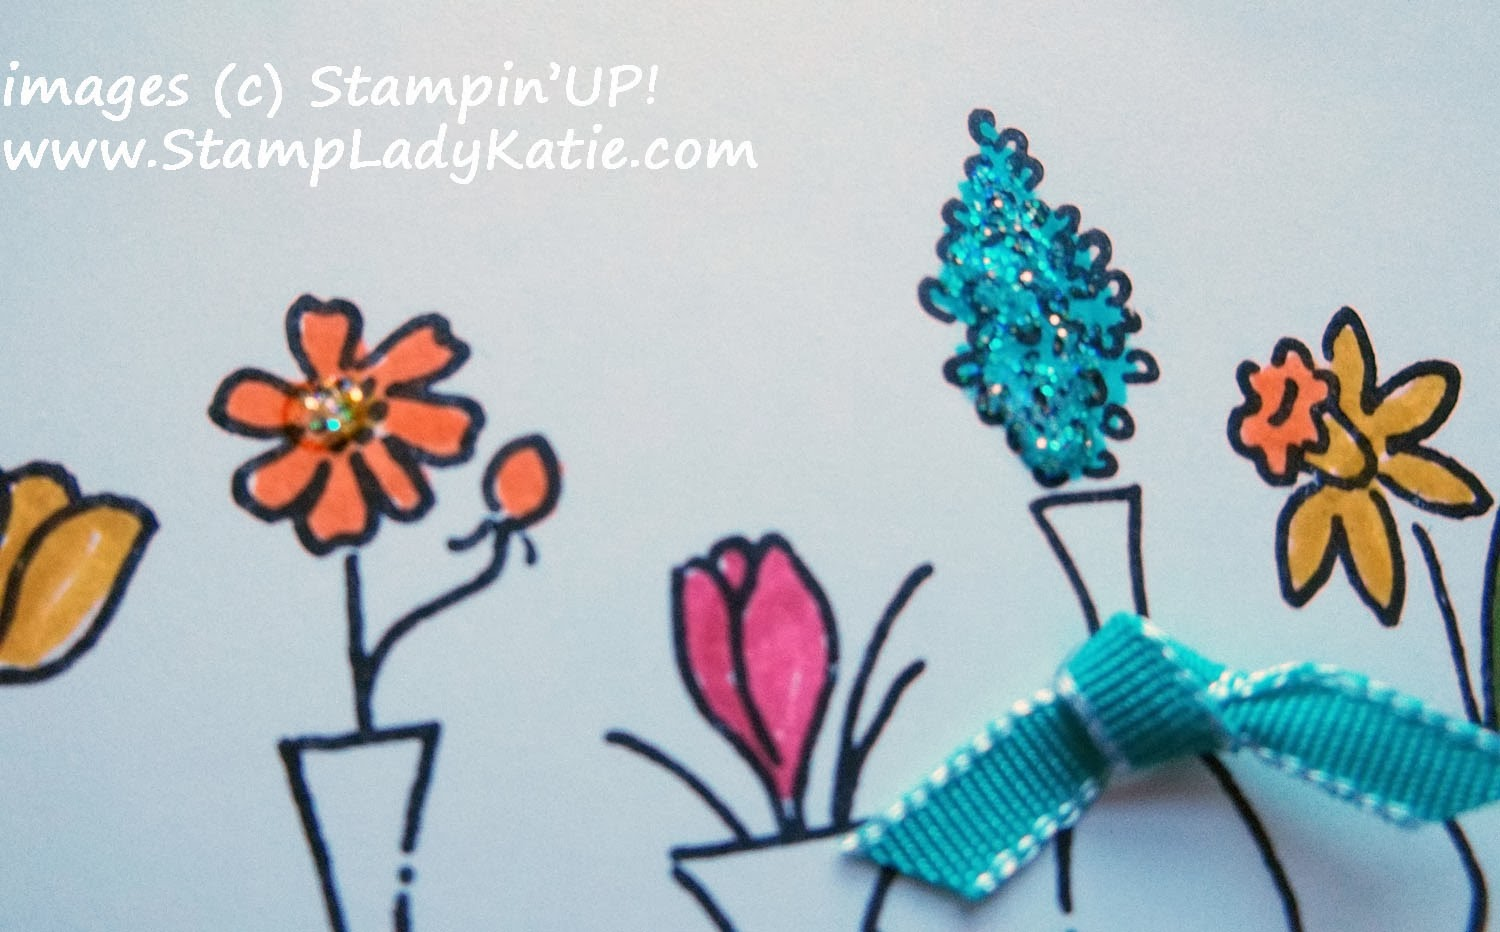 Card made with Stampin'UP!'s Vivid Vases Stamp Set with Dazzling Details Glitter Glue